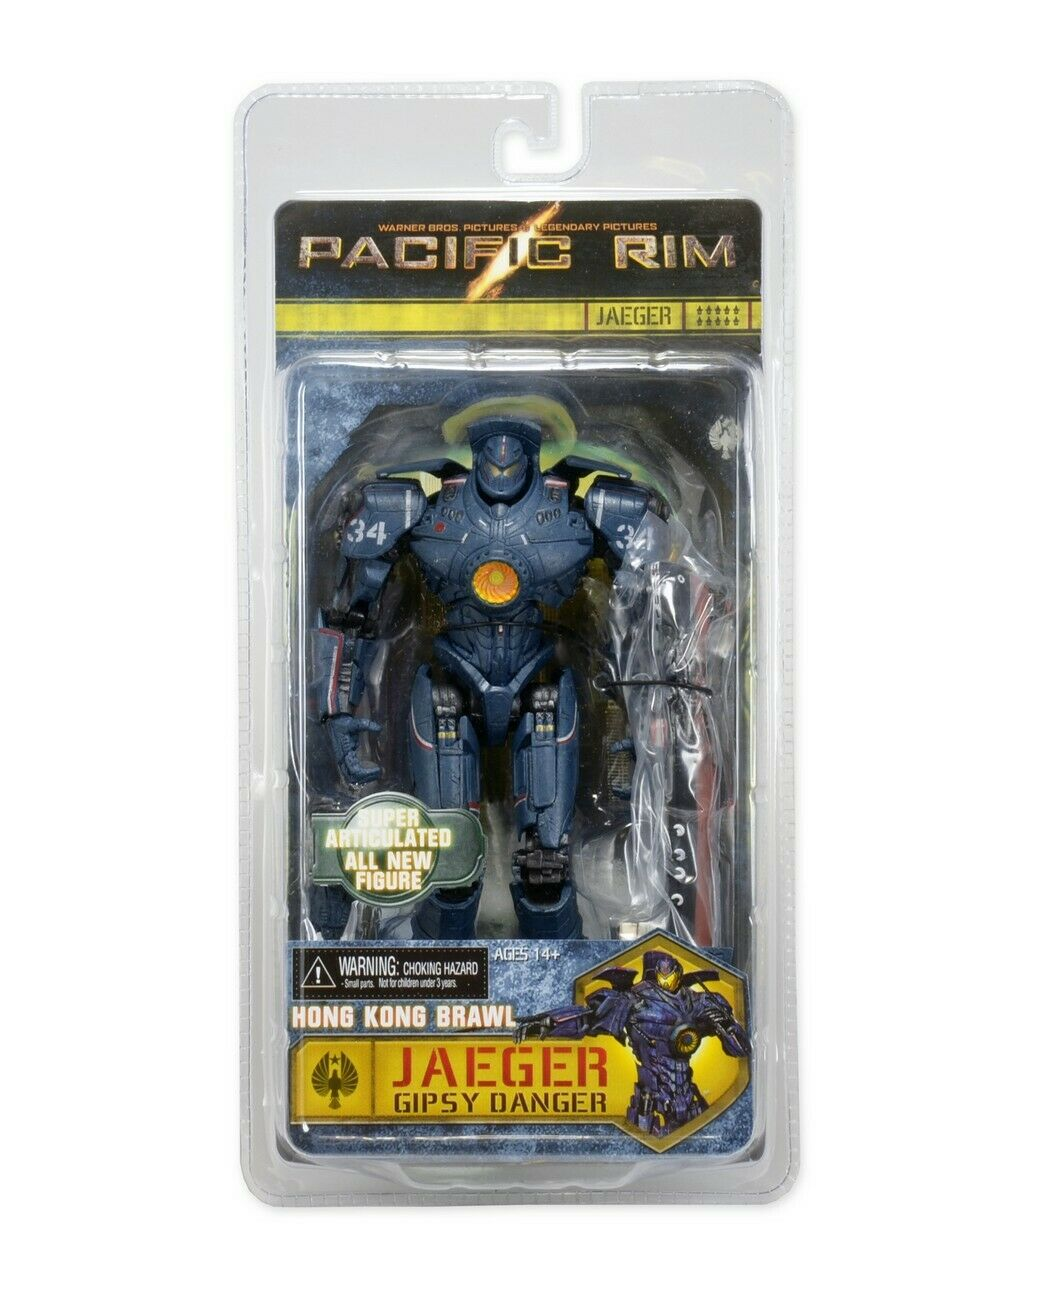 Pacific Rim Series 4 Jaeger Gipsy Danger 2.0 Action Figure  Hong Kong Brawl Edit Action Figures